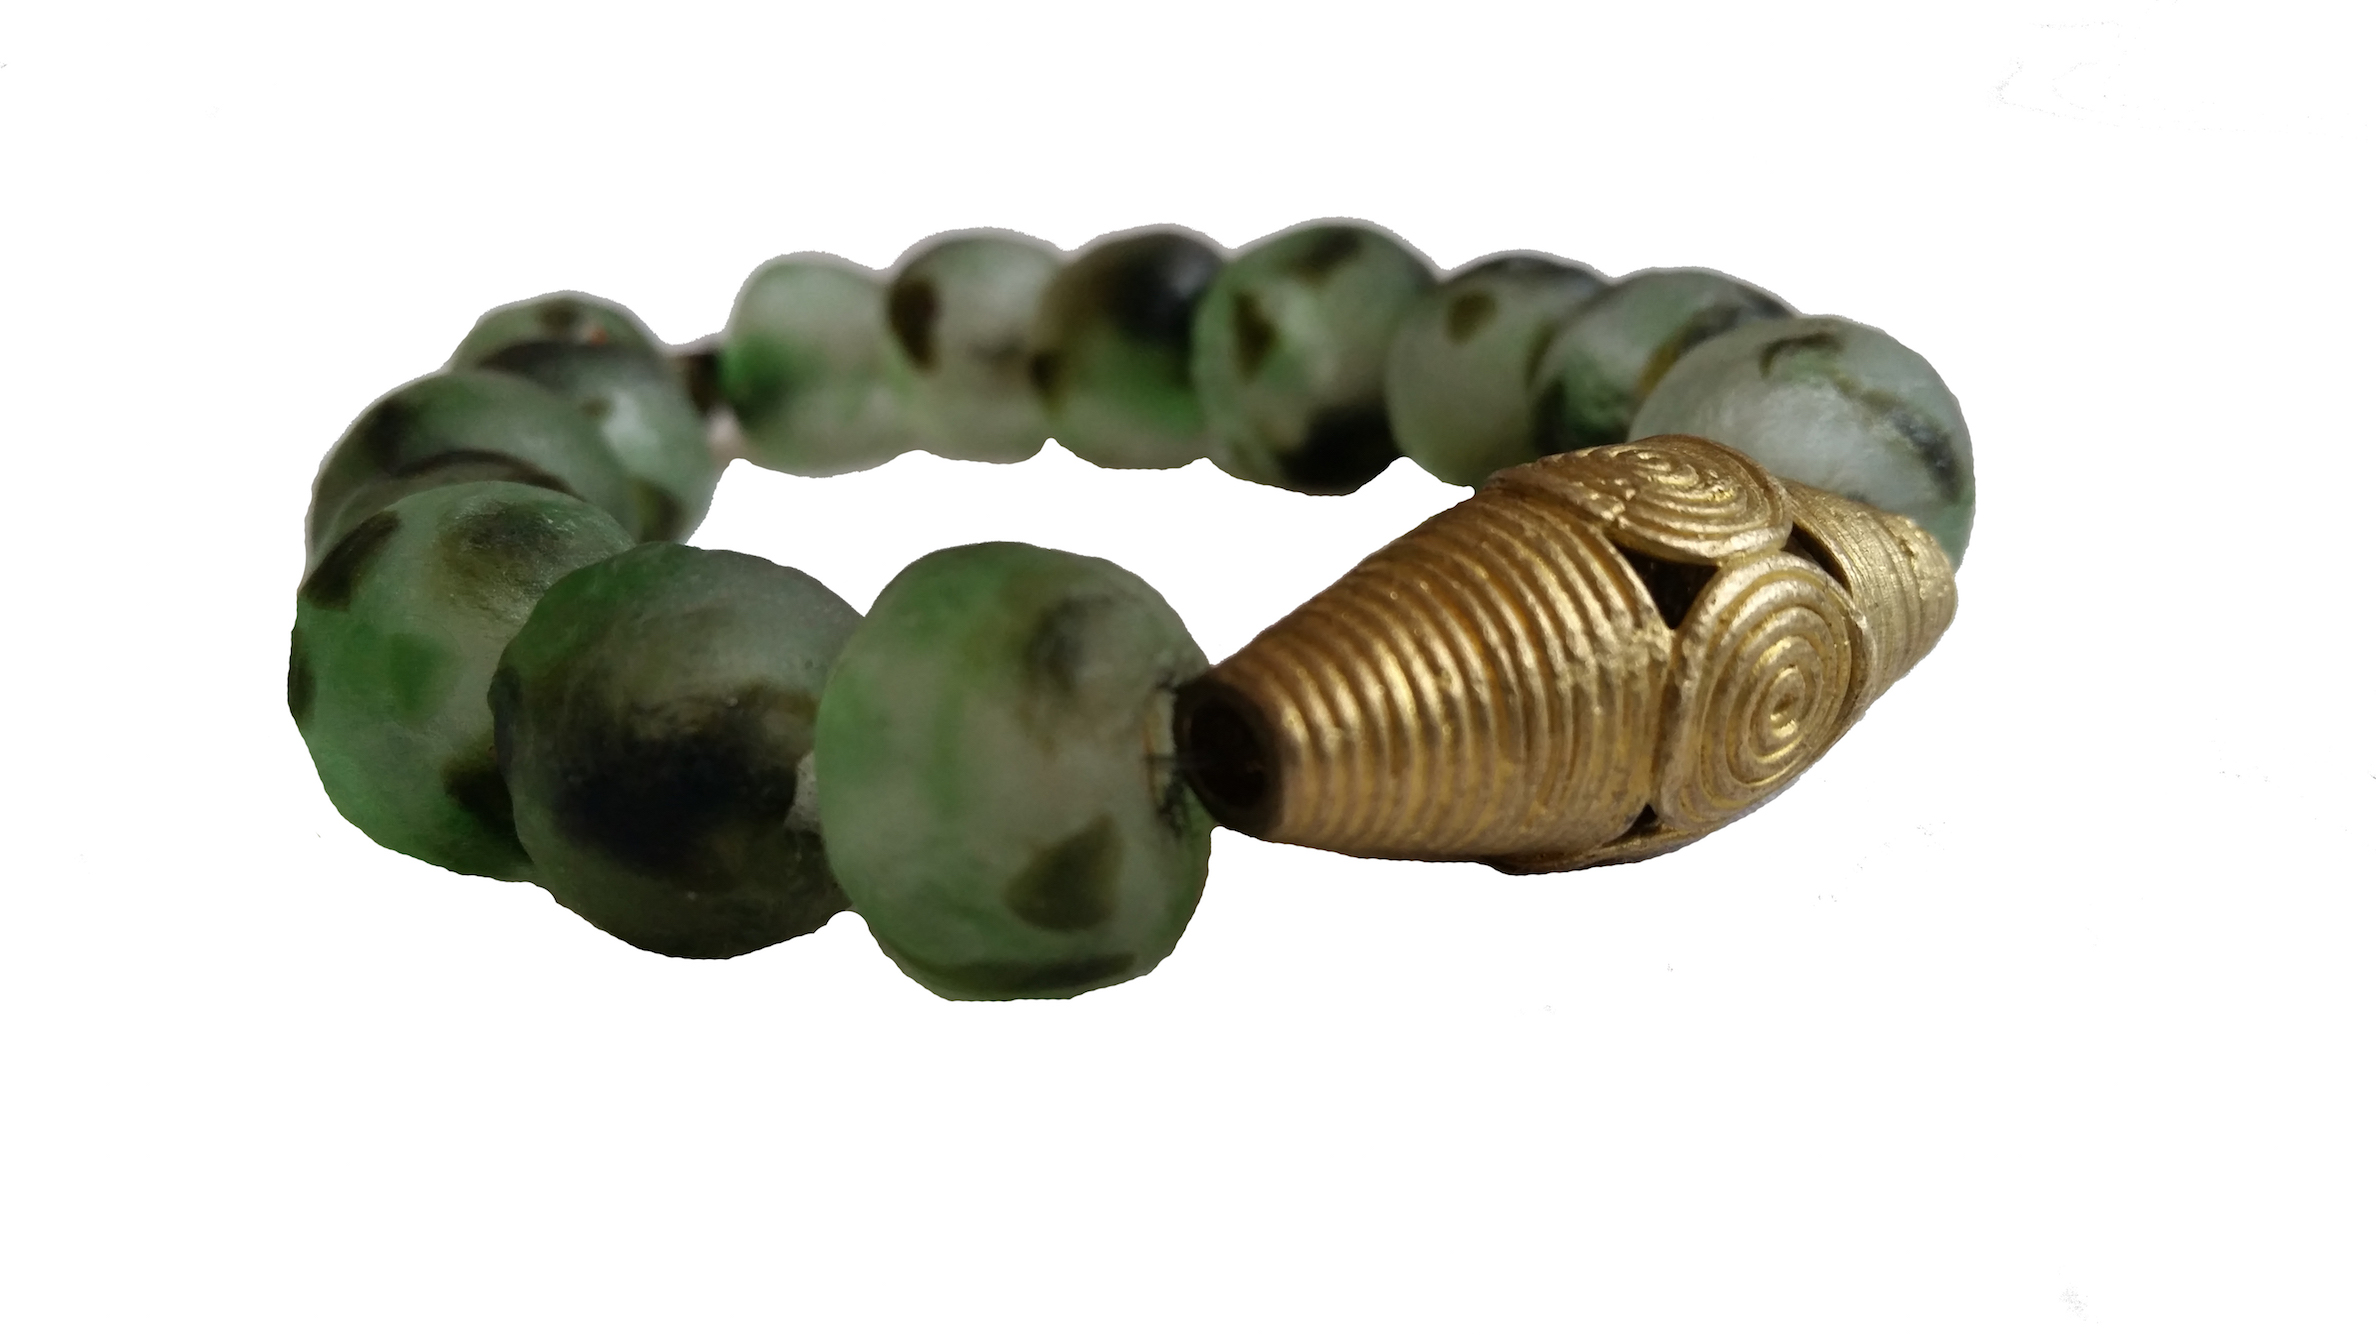 GLASS BEAD & BRONZE BRACELET   Handmade recycled glass beads from Ghana's Volta region and lost wax-cast bronze beads from Ghana's Ashanti region.